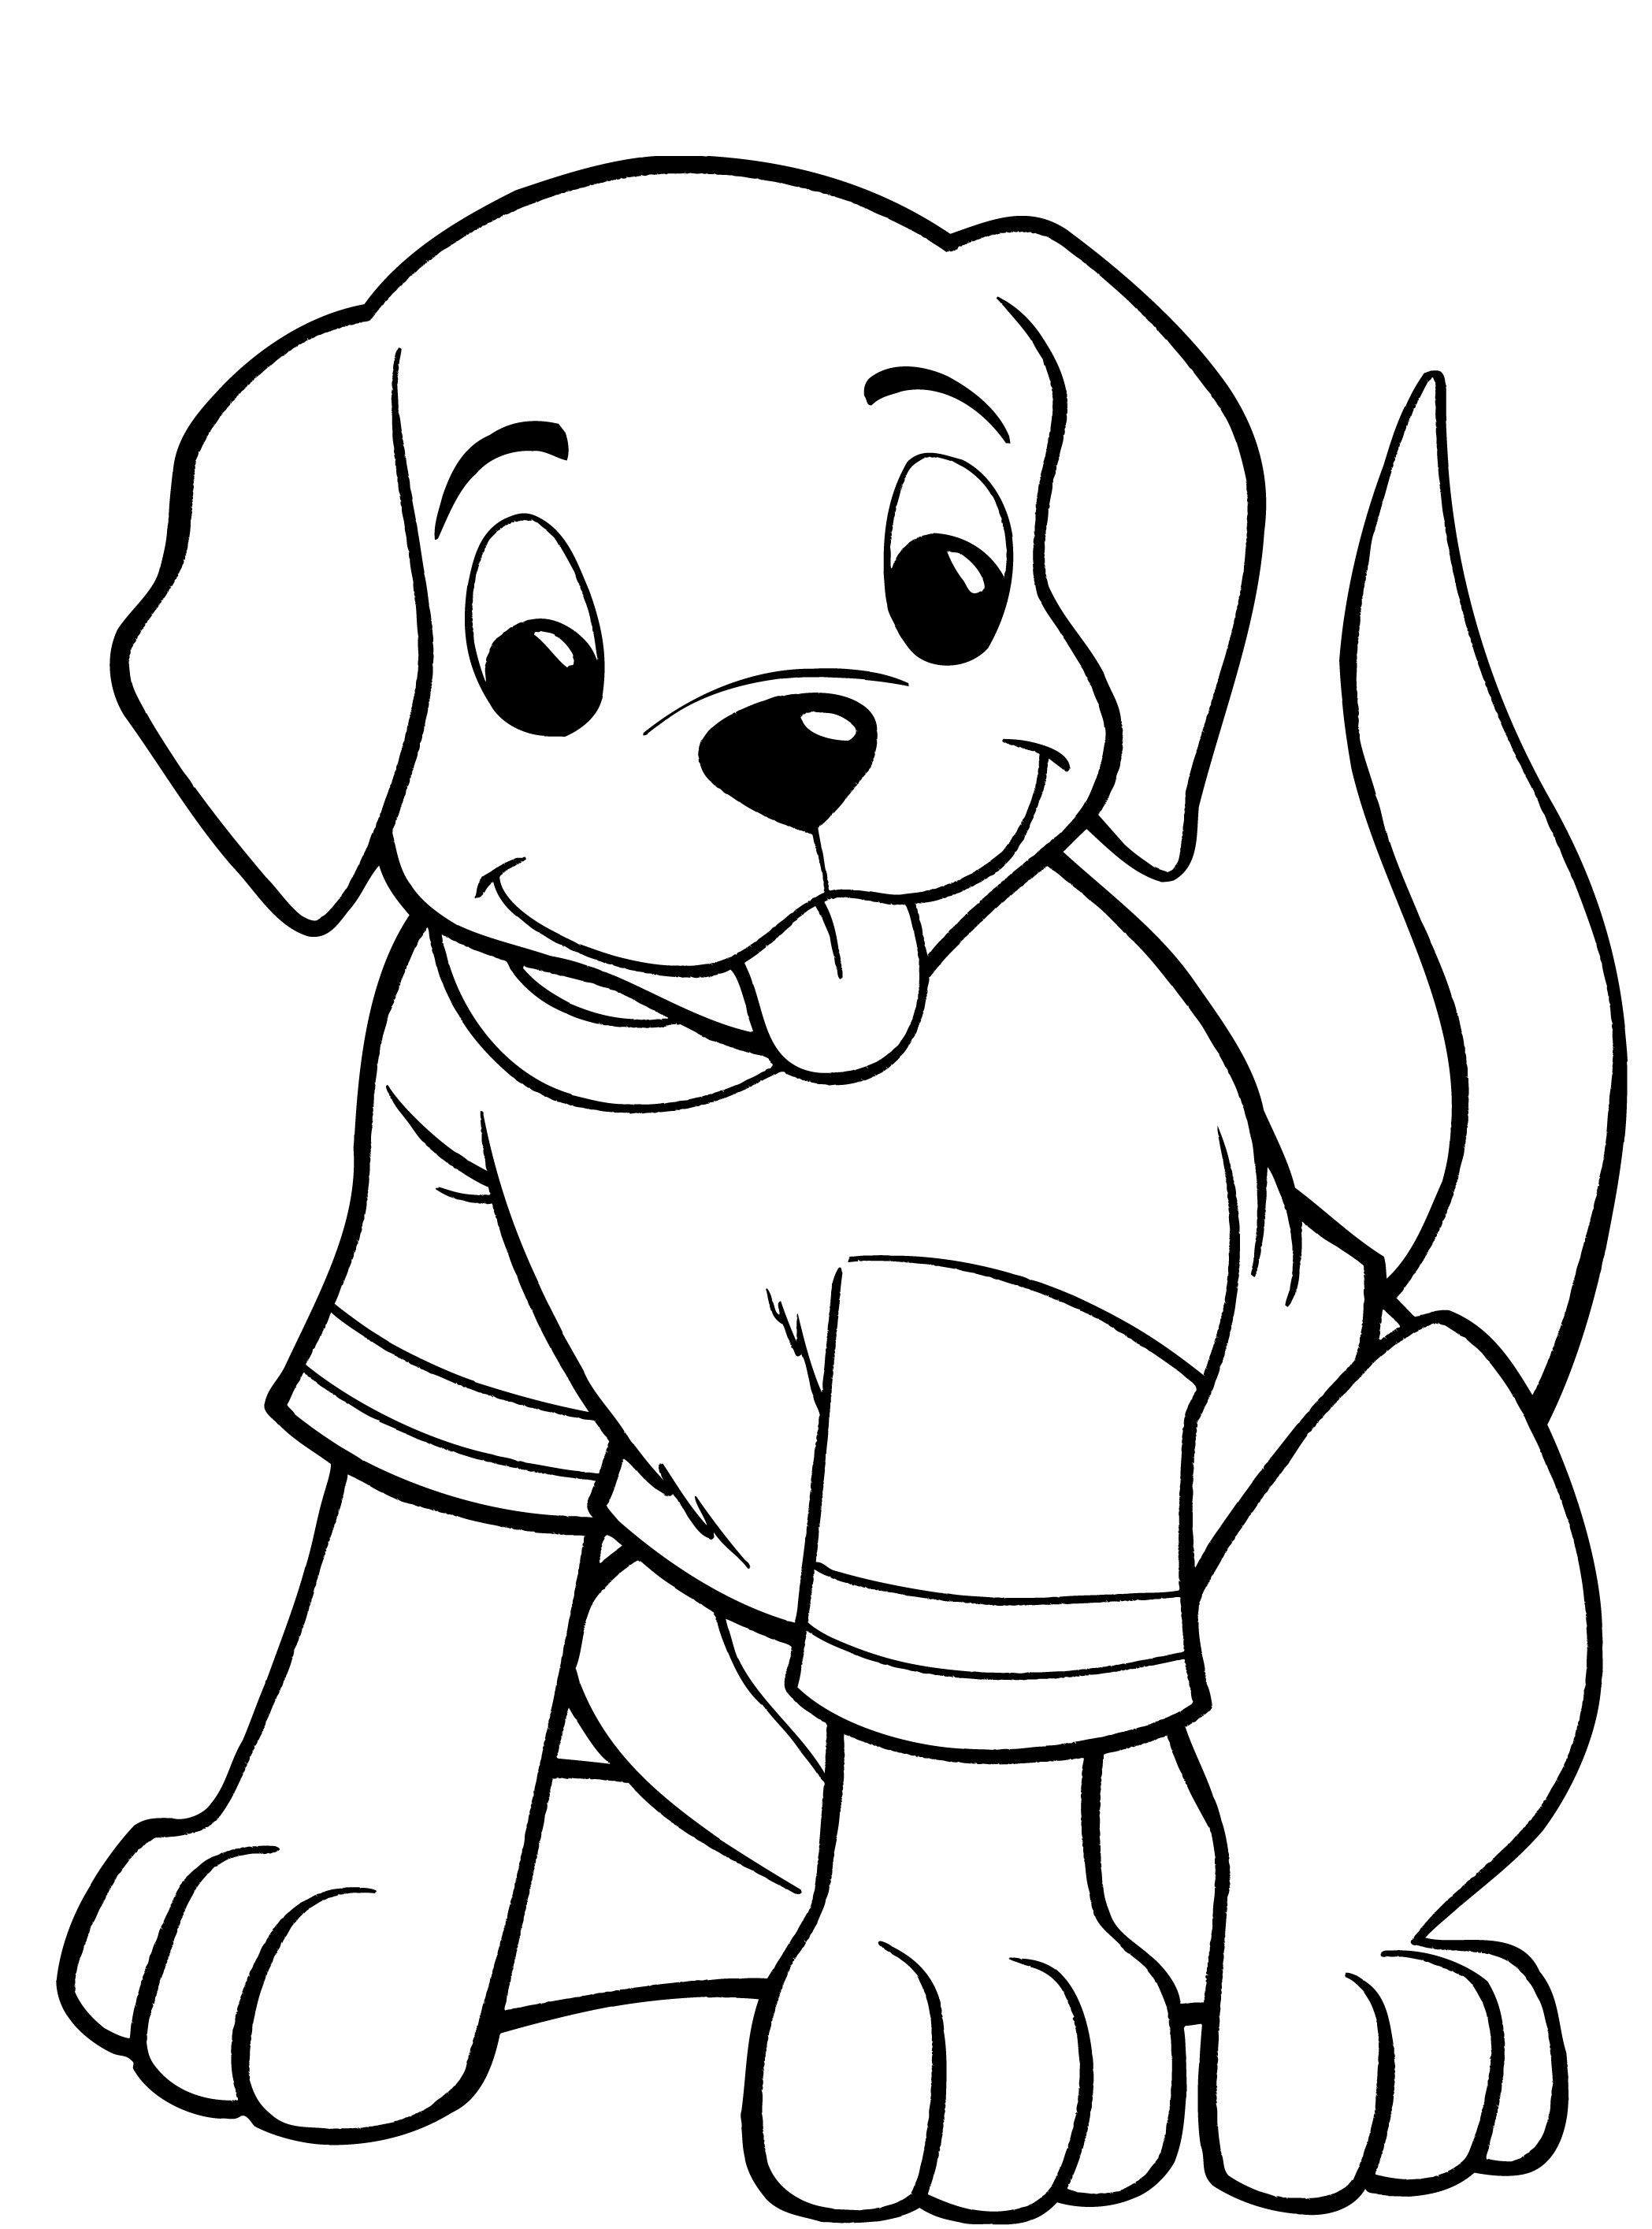 havanese puppy coloring pages havanese drawing at getdrawings free download pages puppy havanese coloring